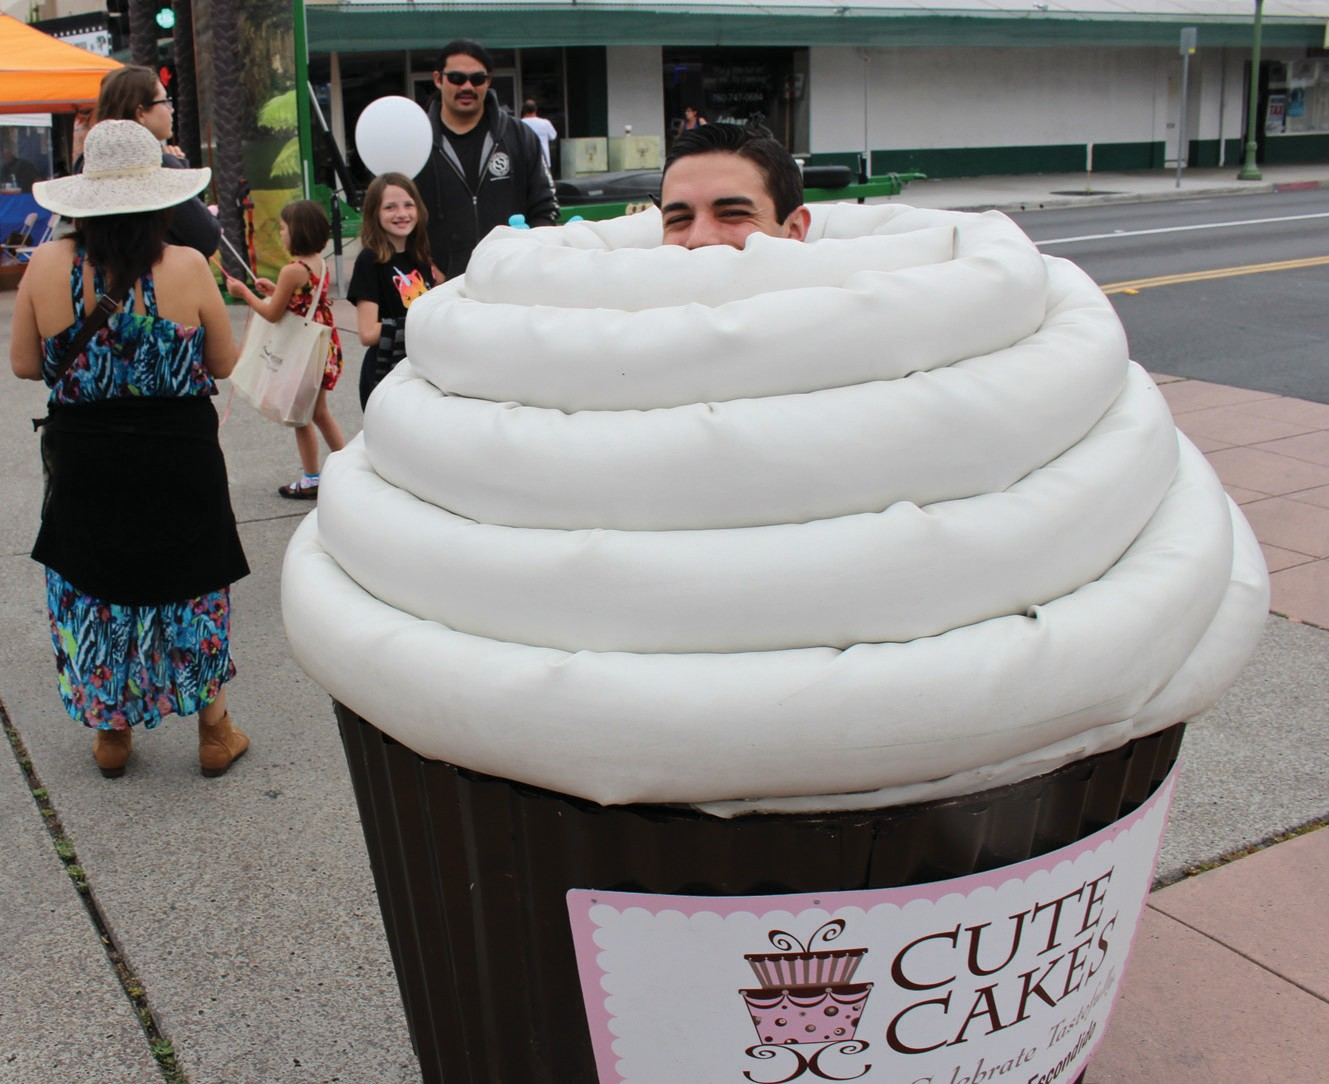 A human cupcake out advertising for Cute Cakes.